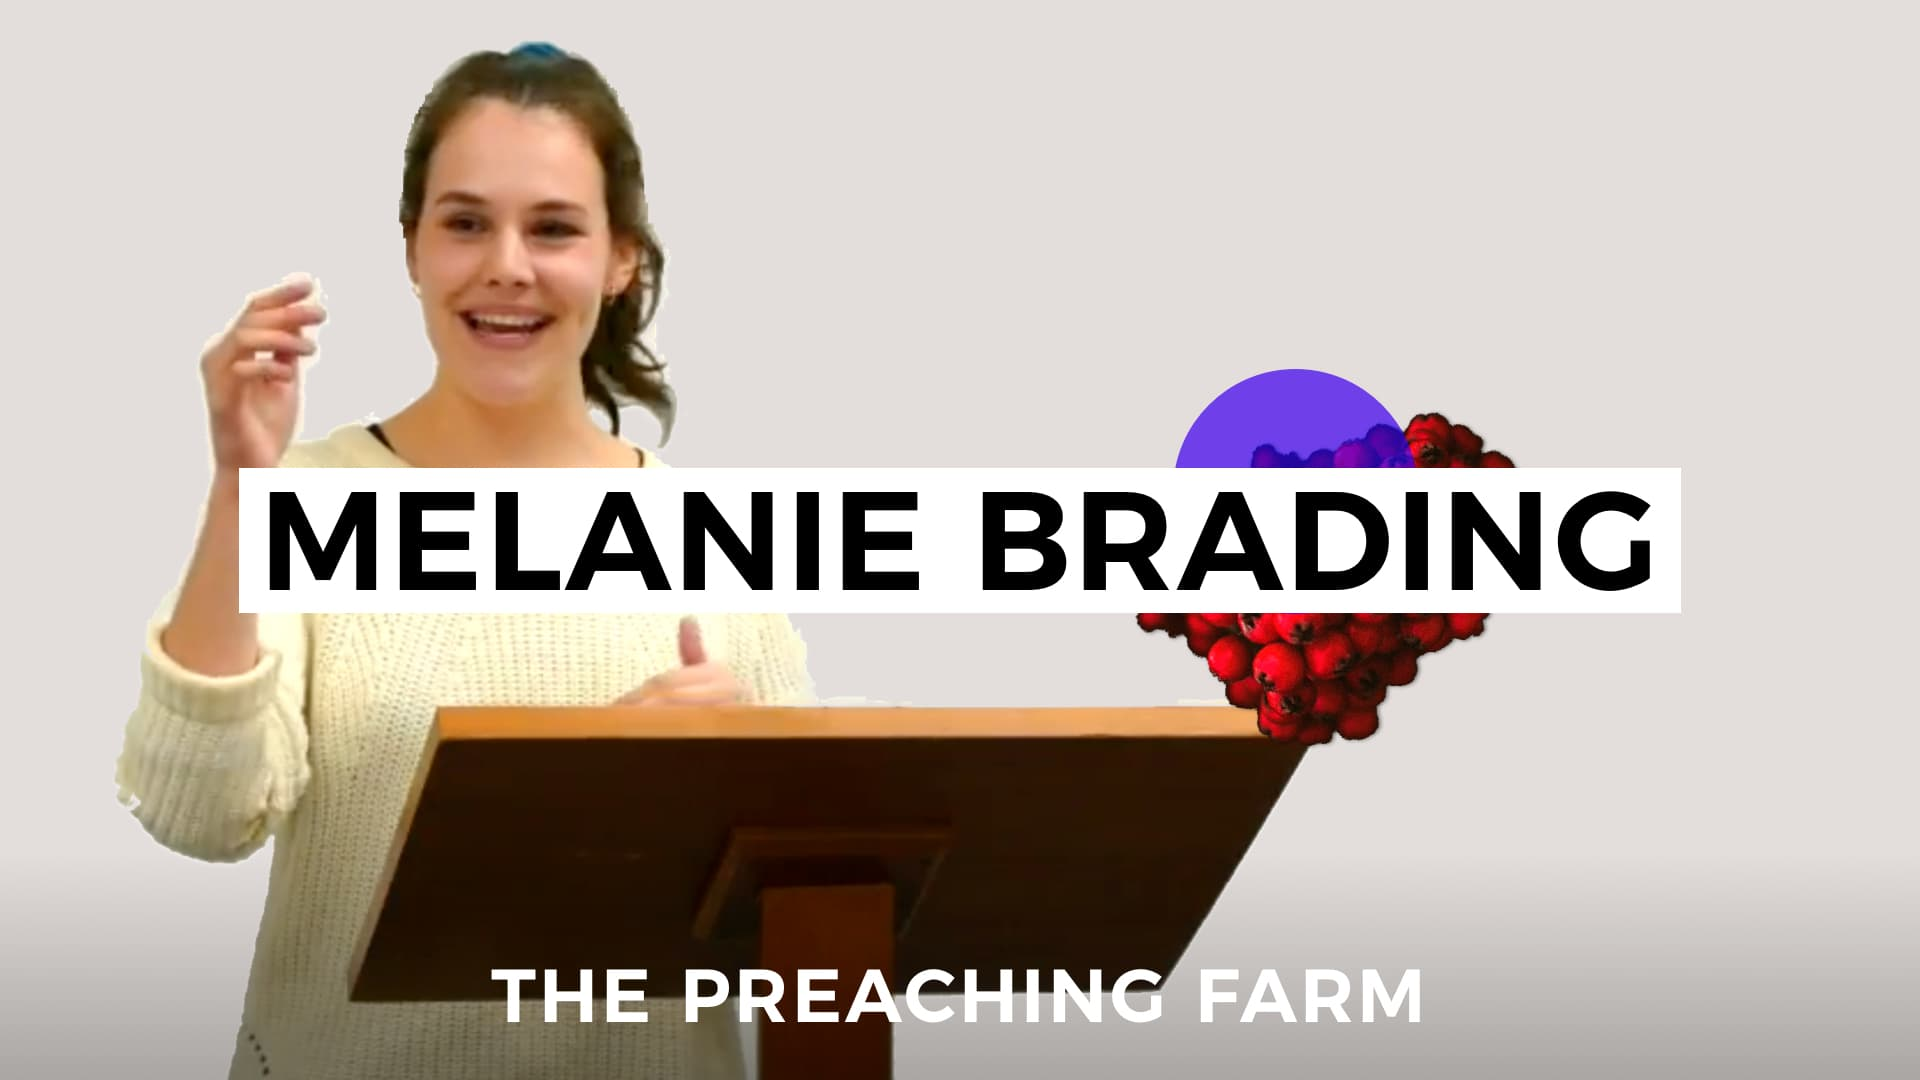 The Preaching Farm 2: Melanie Brading